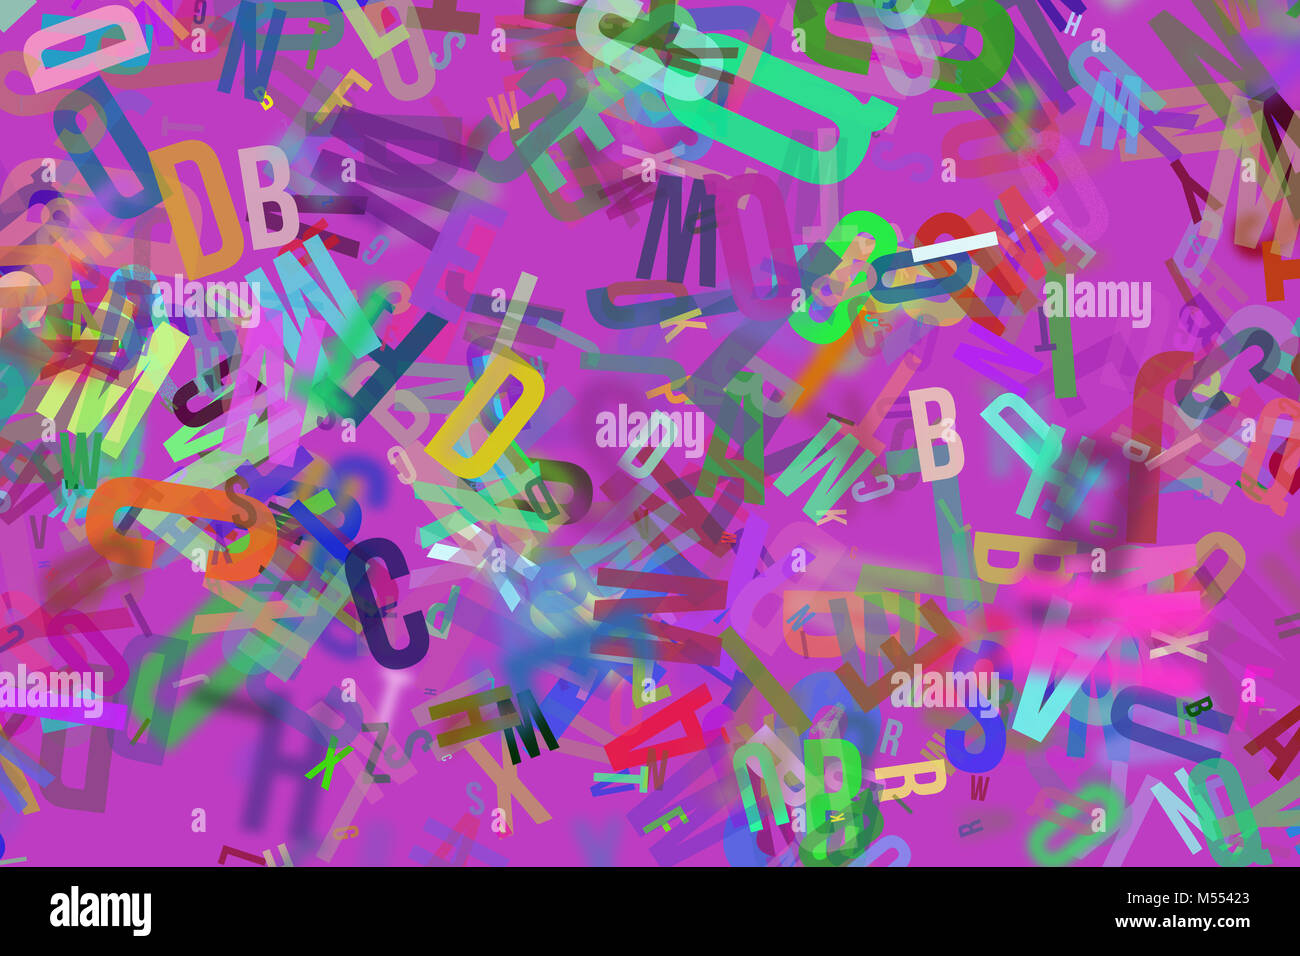 Colorful Blur Alphabets Letters From A To Z Word Cloud